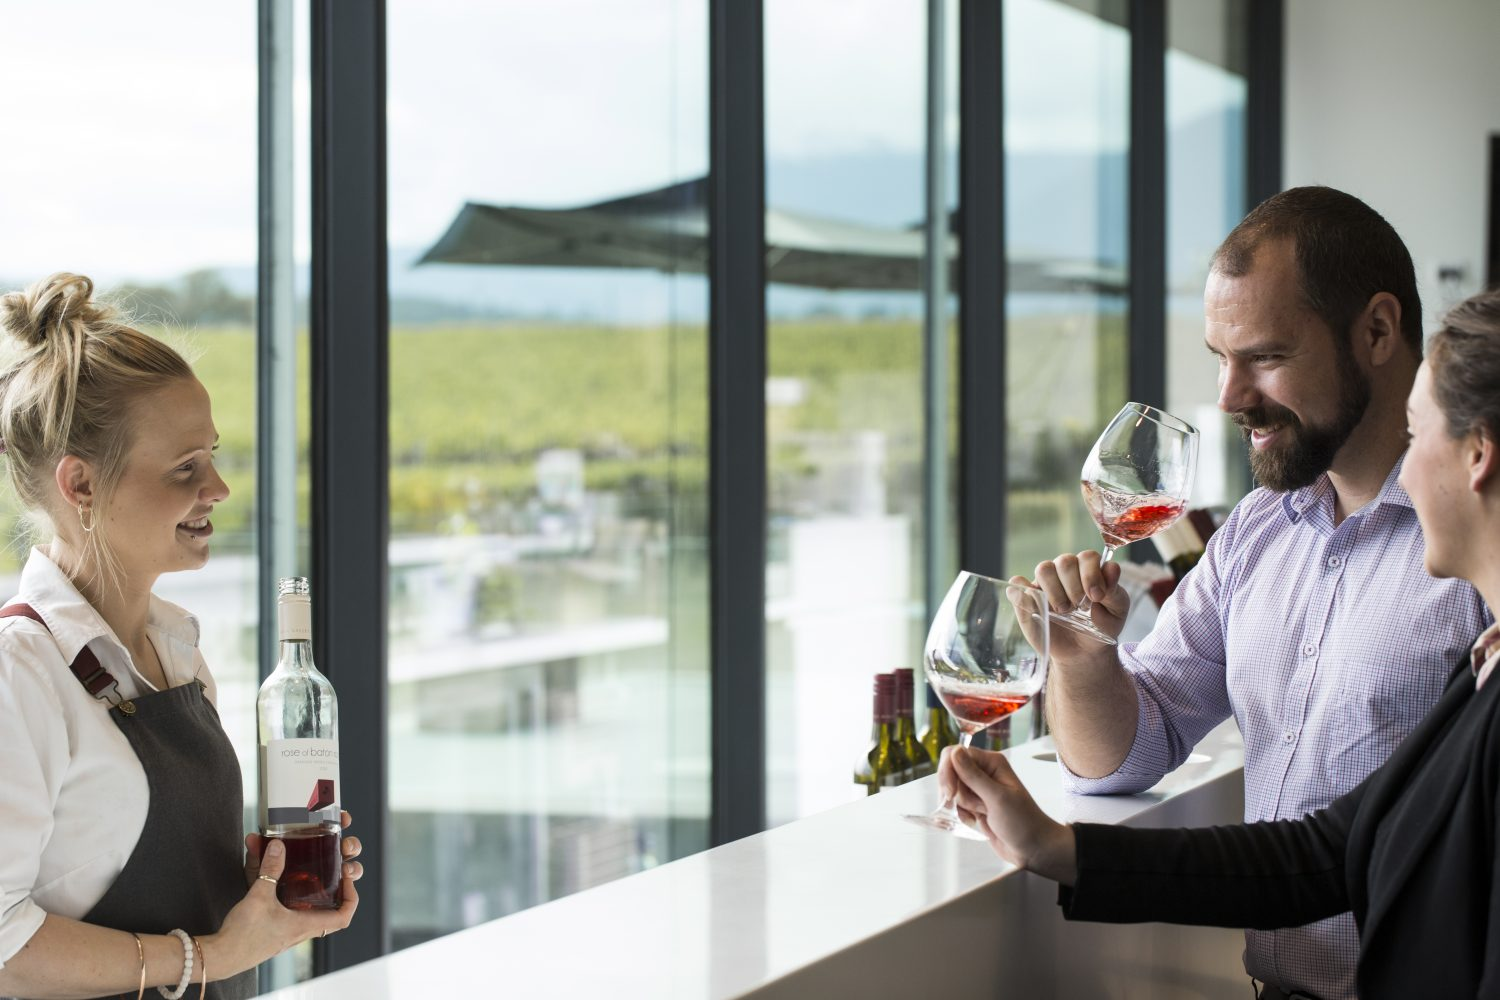 Share our warm, friendly atmosphere and spectacular views while you enjoy a tasting of our award winning wines.